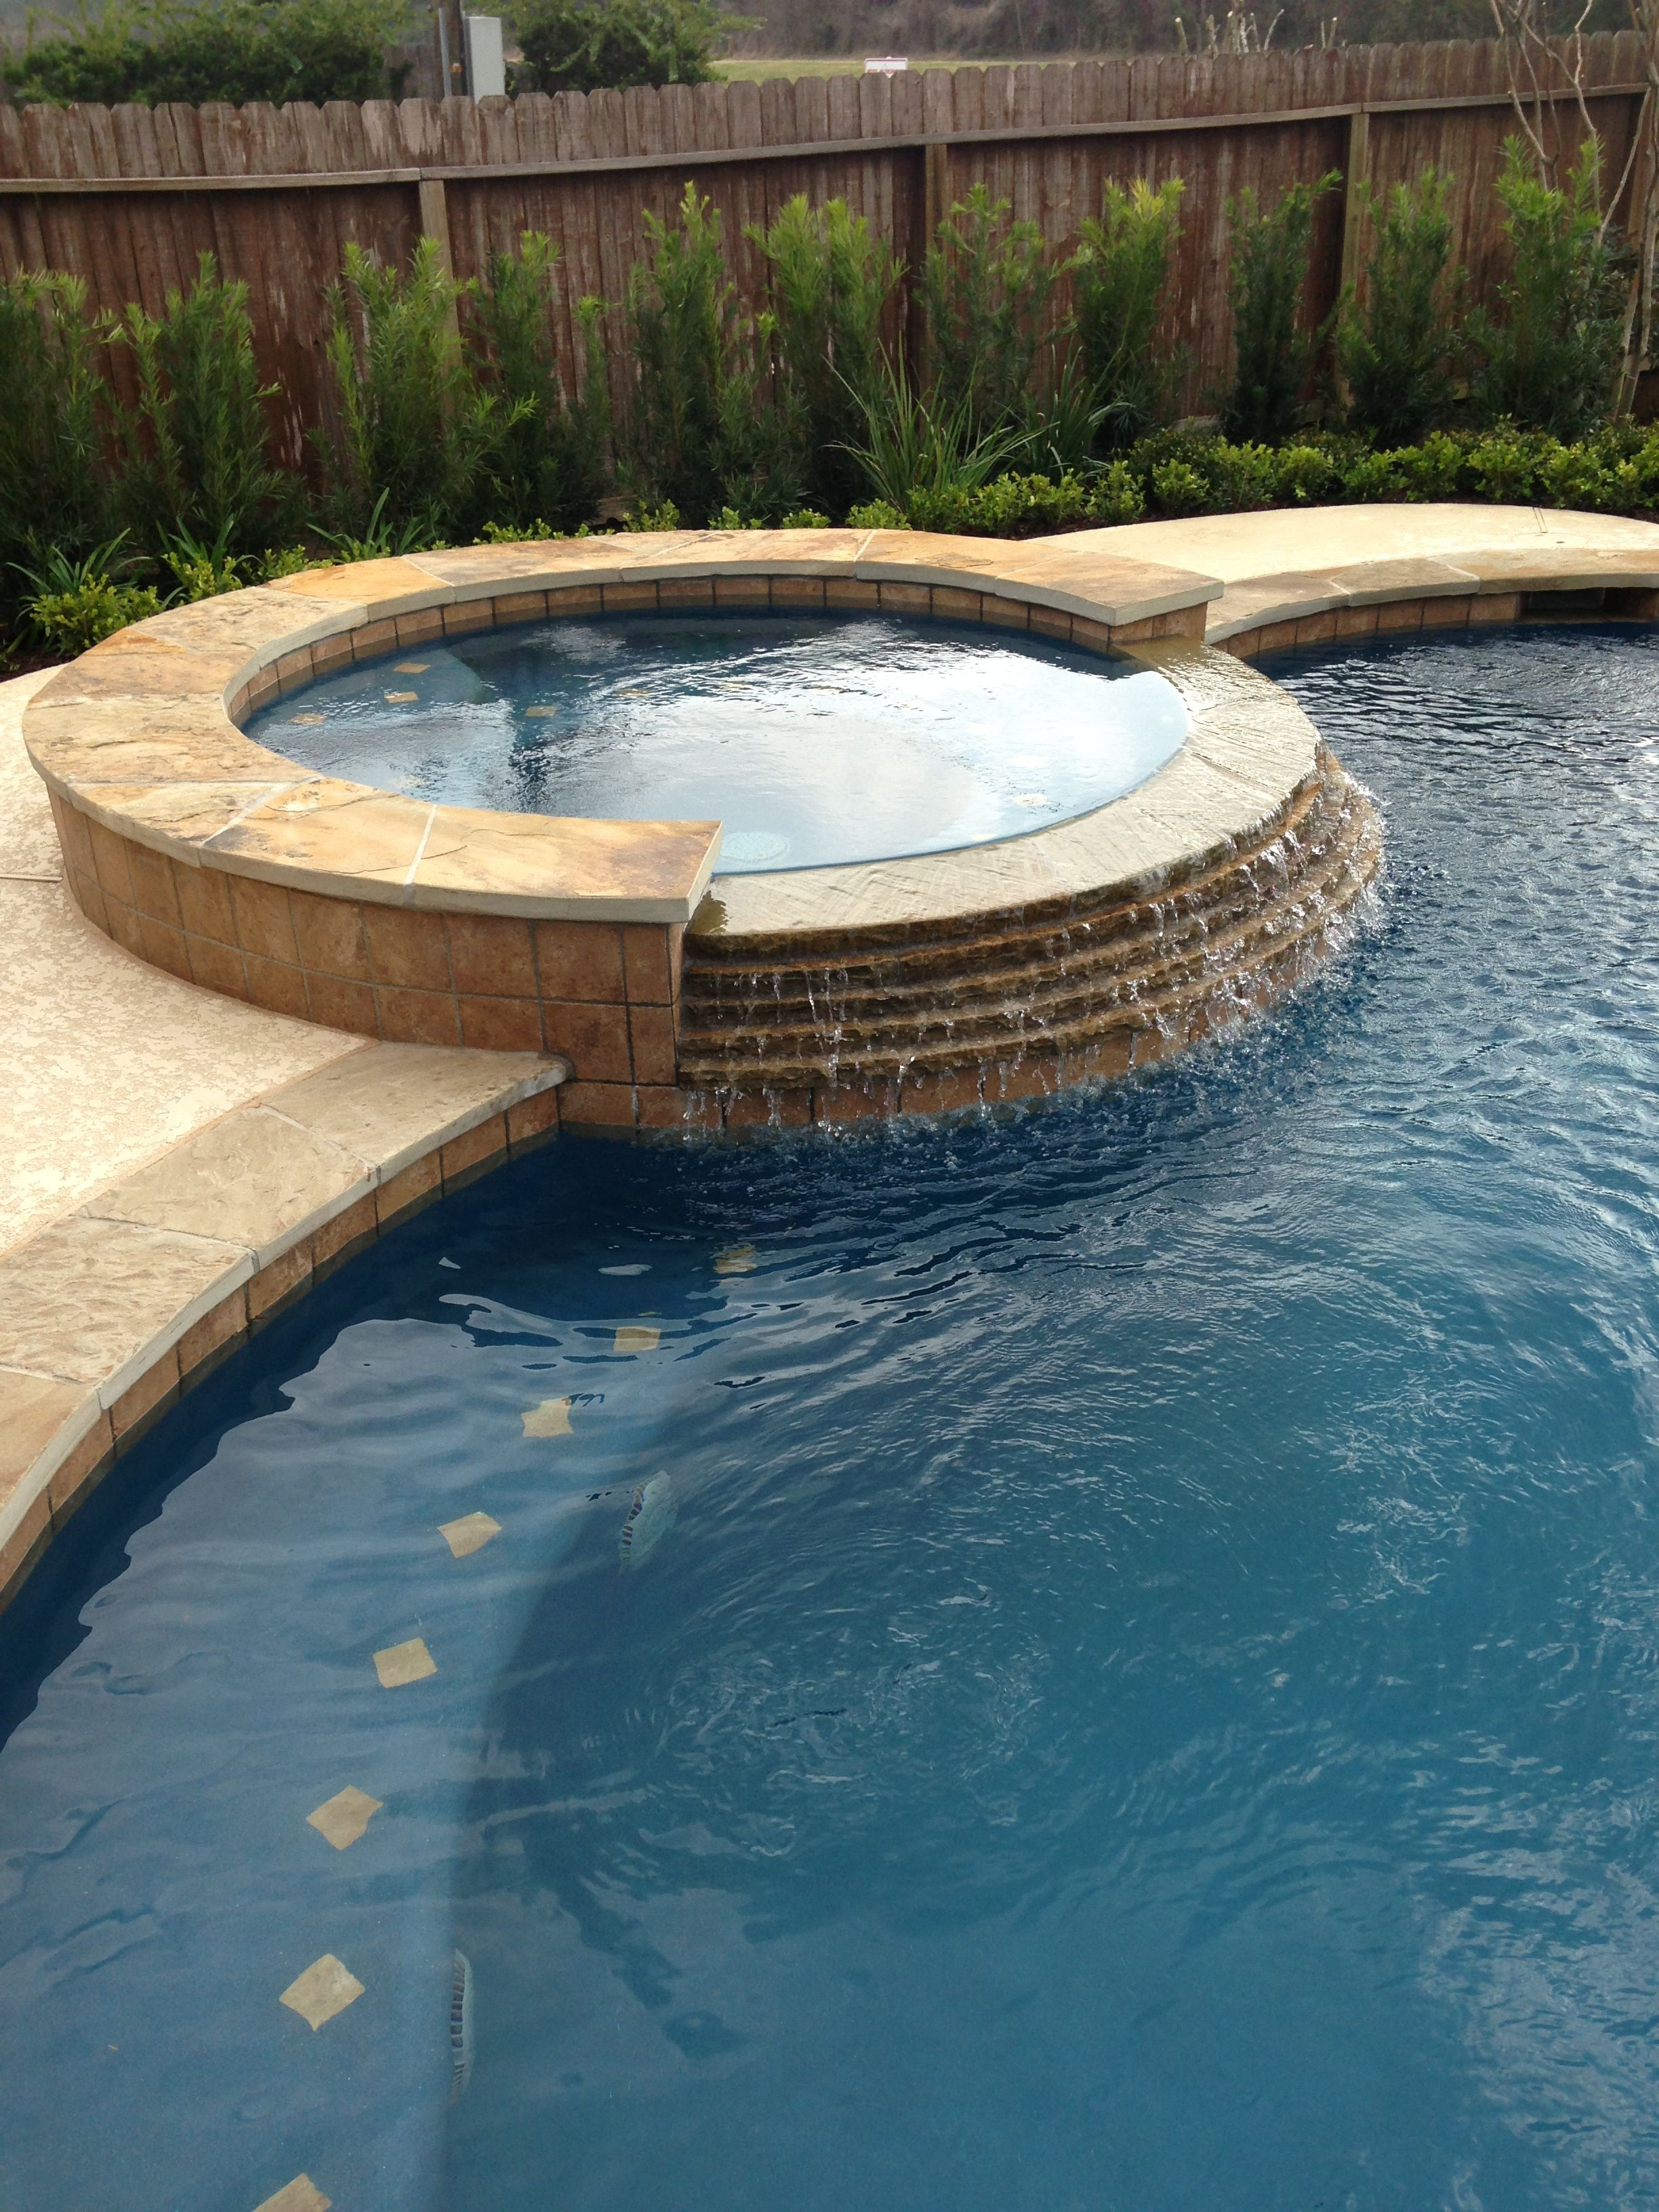 Inground swimming pool tile raised spa stacked stone spa for Swimming pool tile pictures